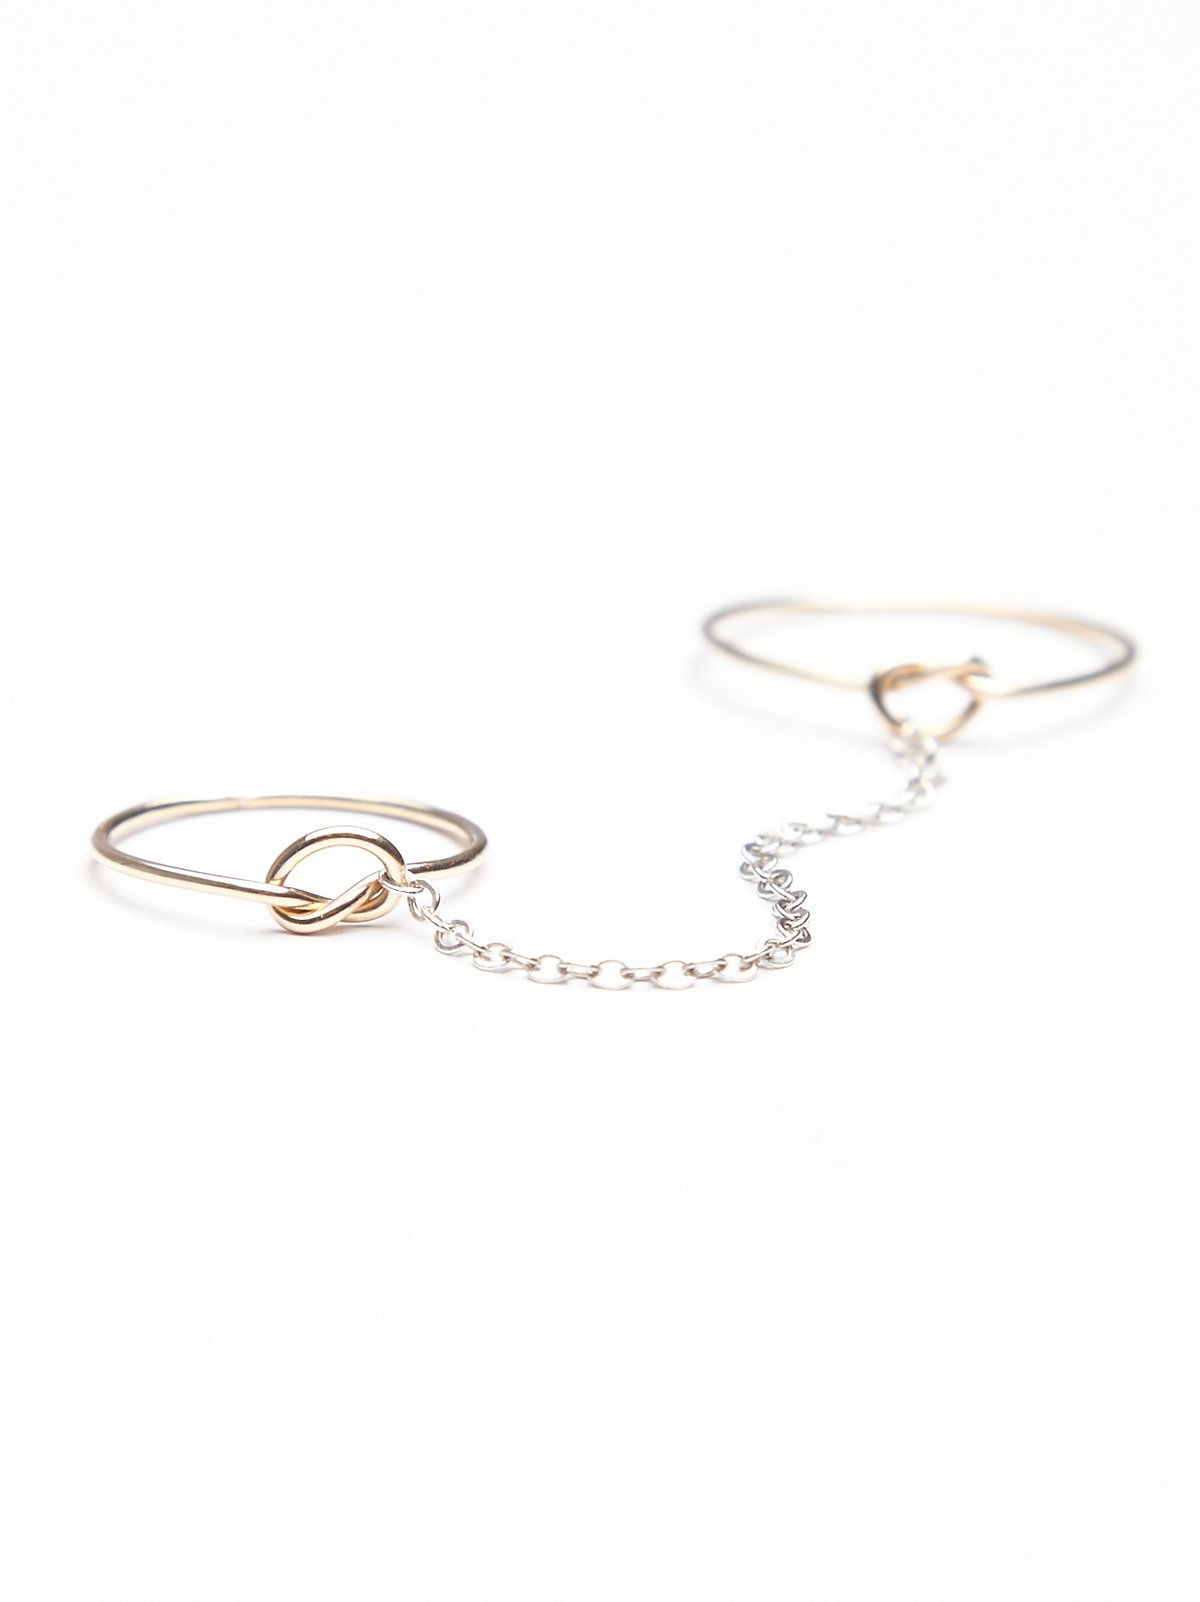 Tether Ring